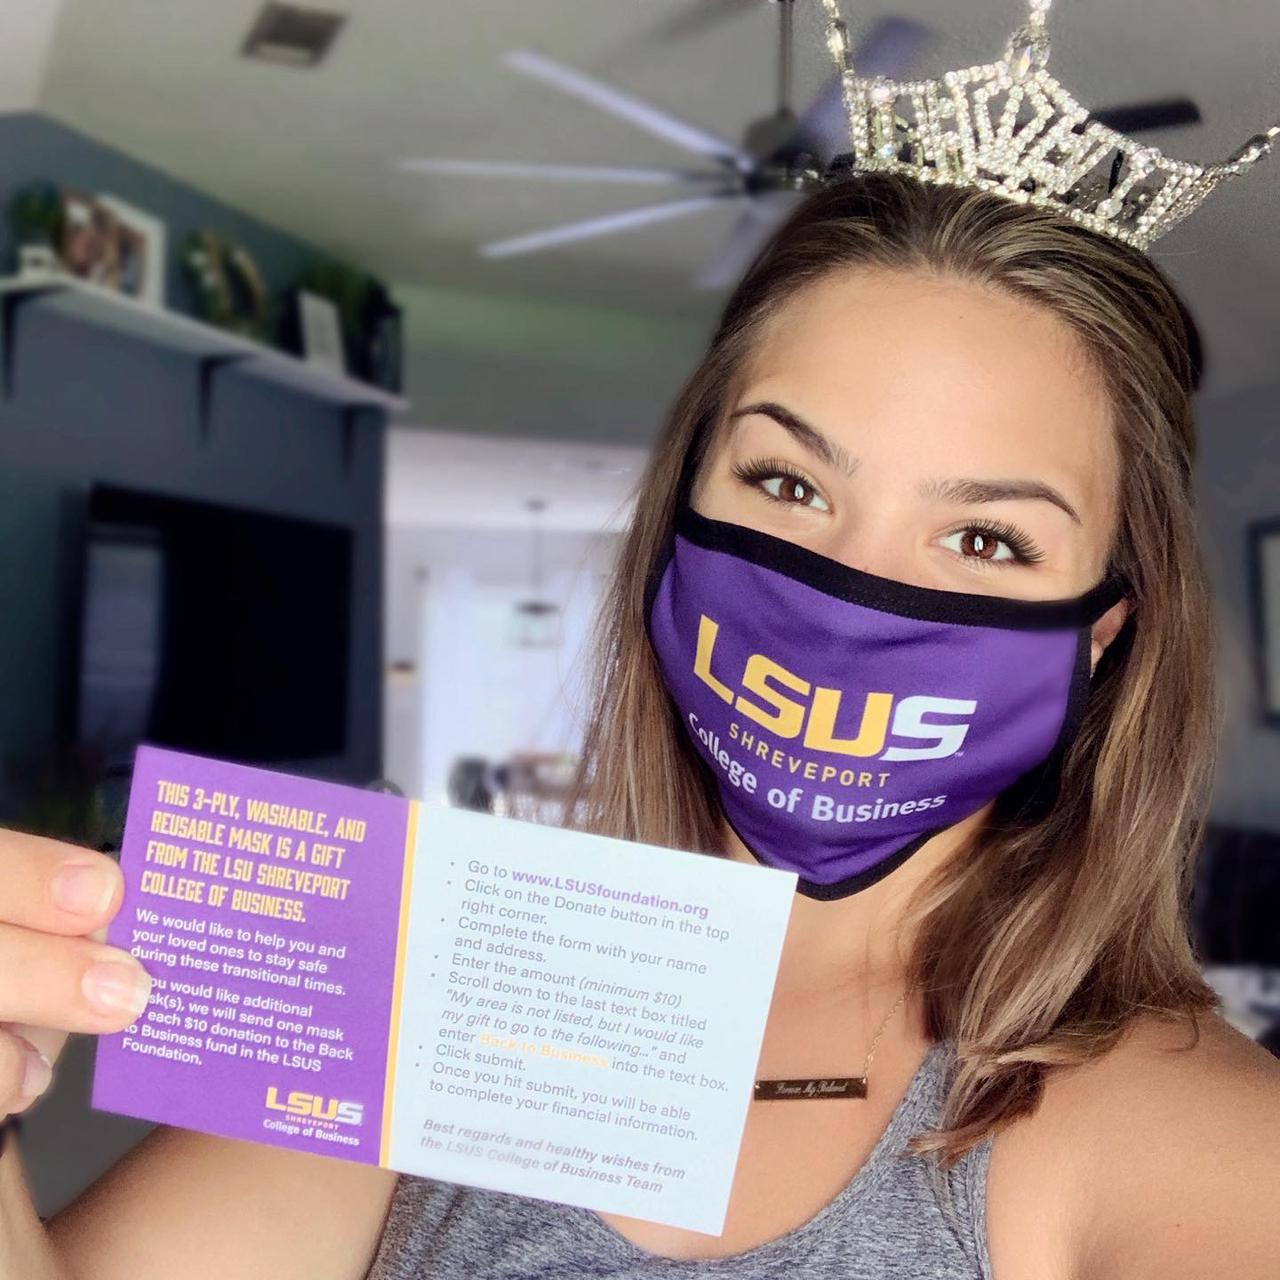 LSUS College of Business provides free masks to students